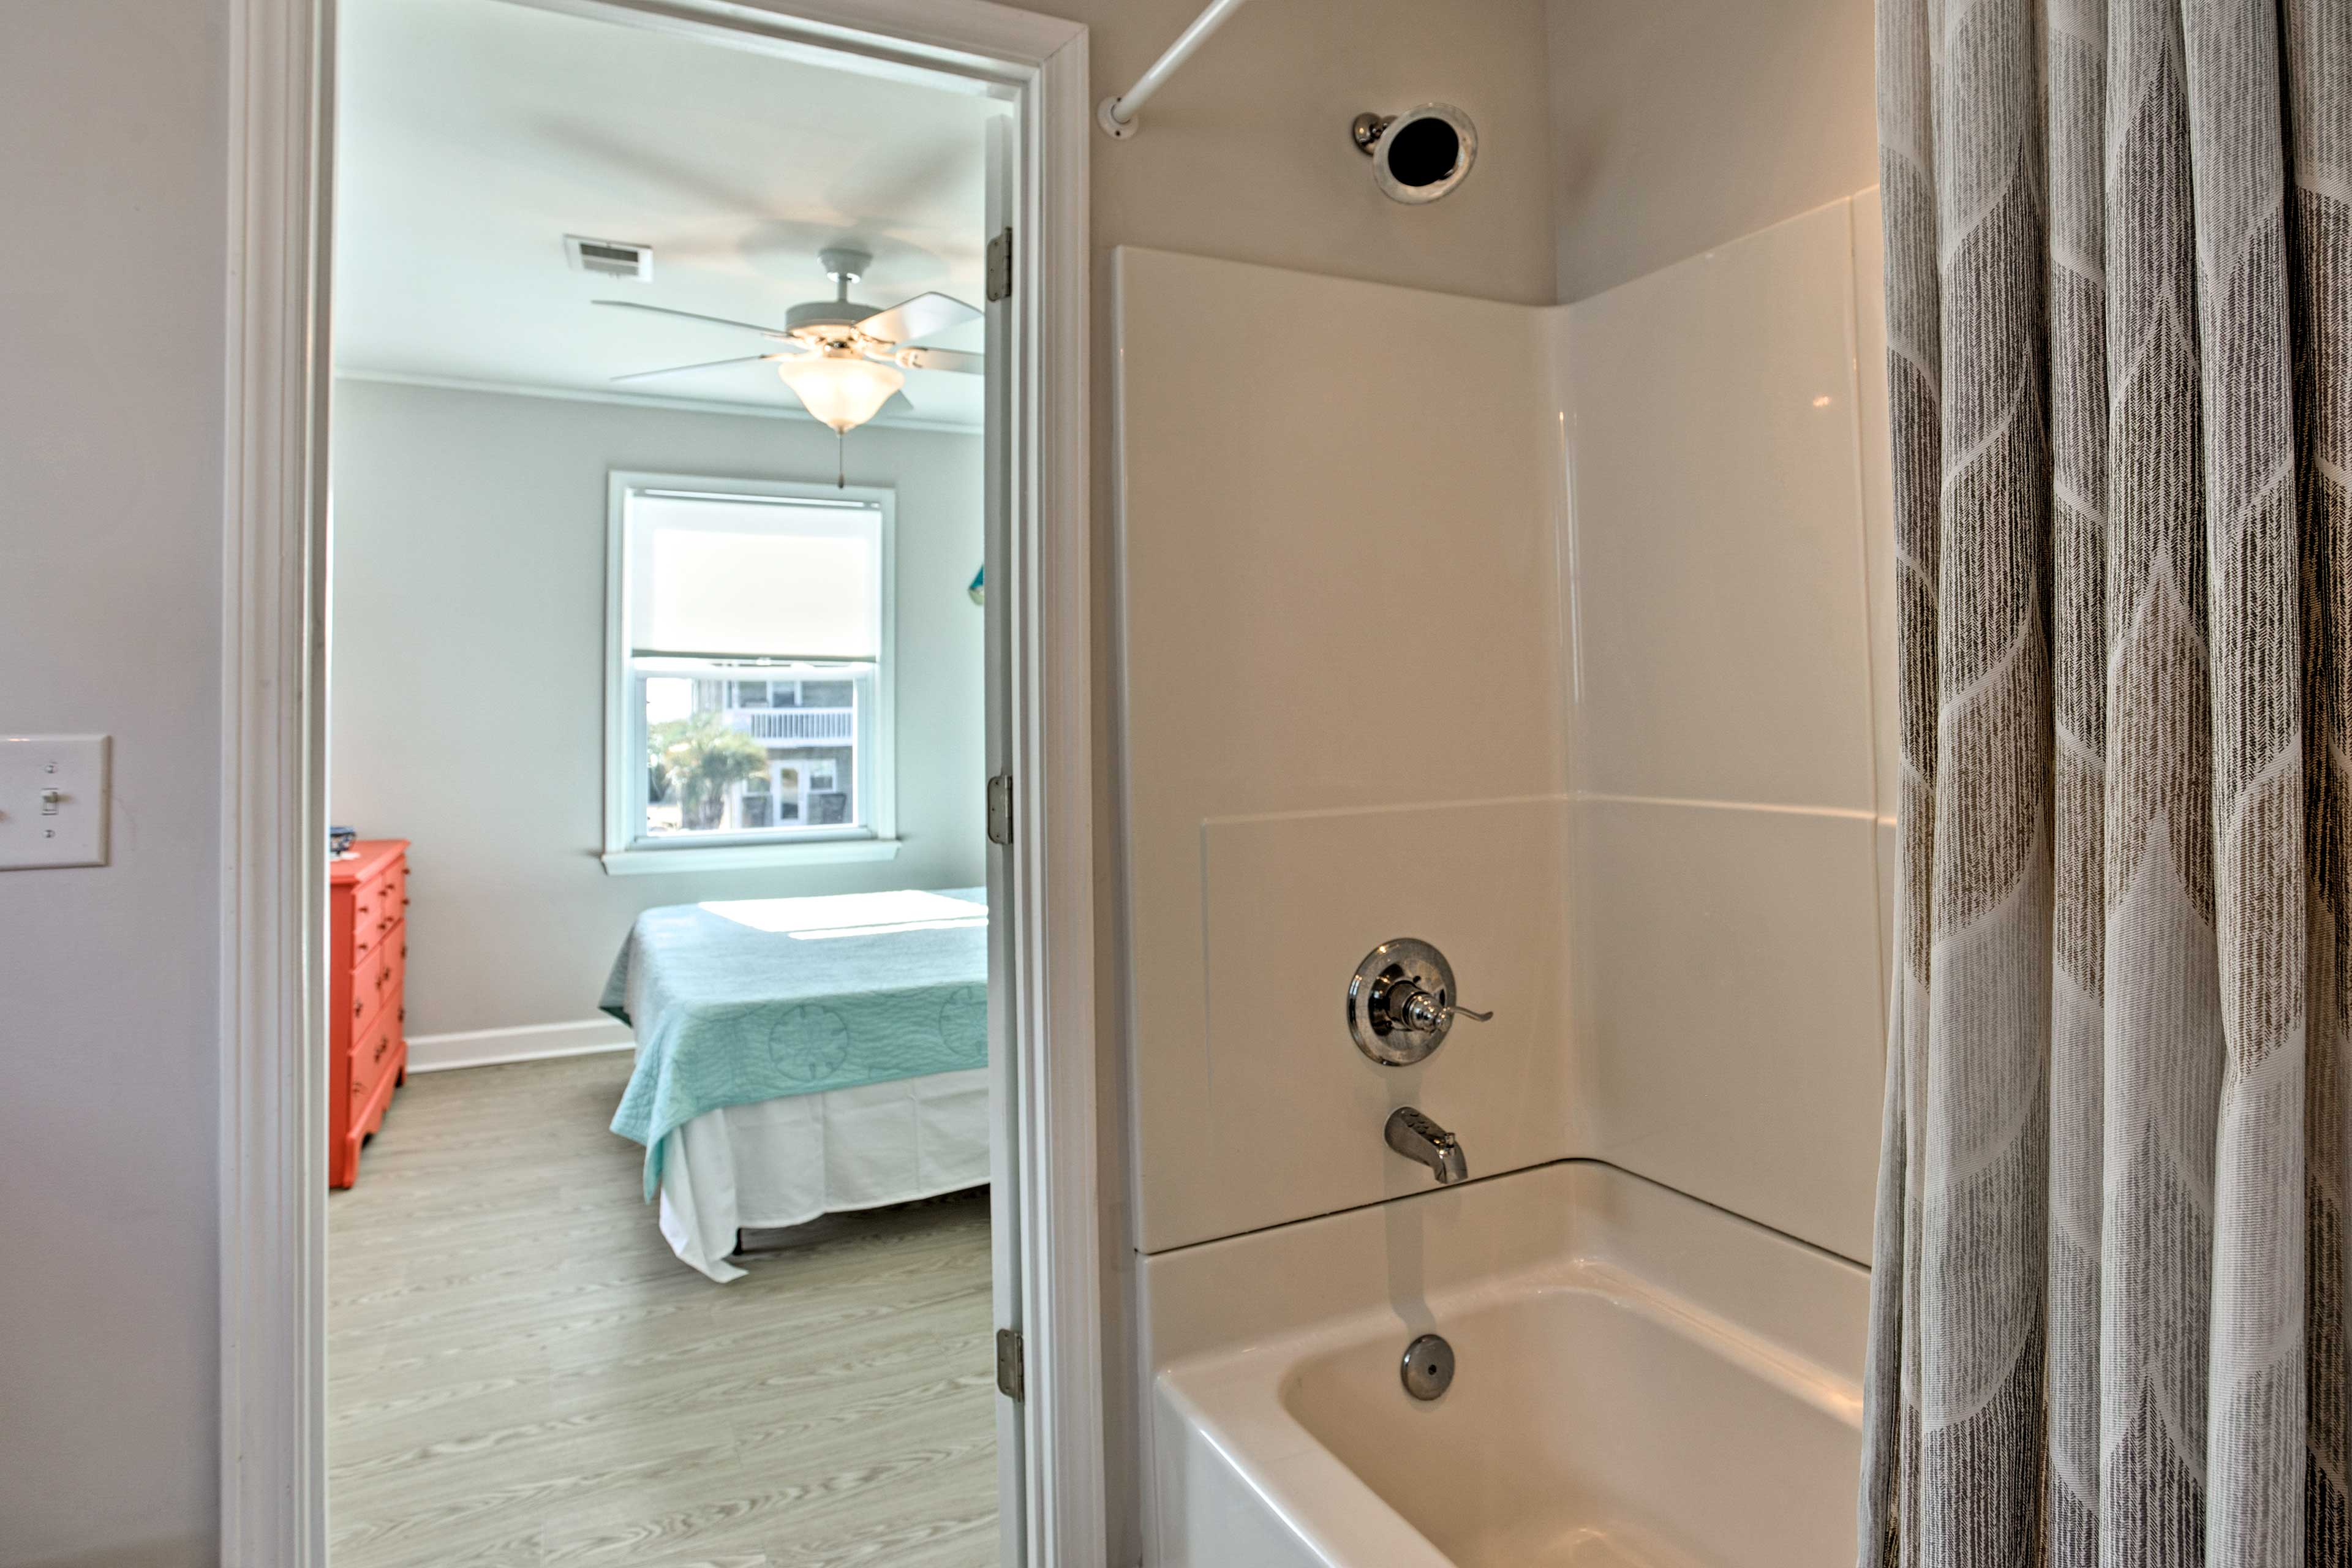 Enjoy a long soak in the tub or a quick rinse in the shower.